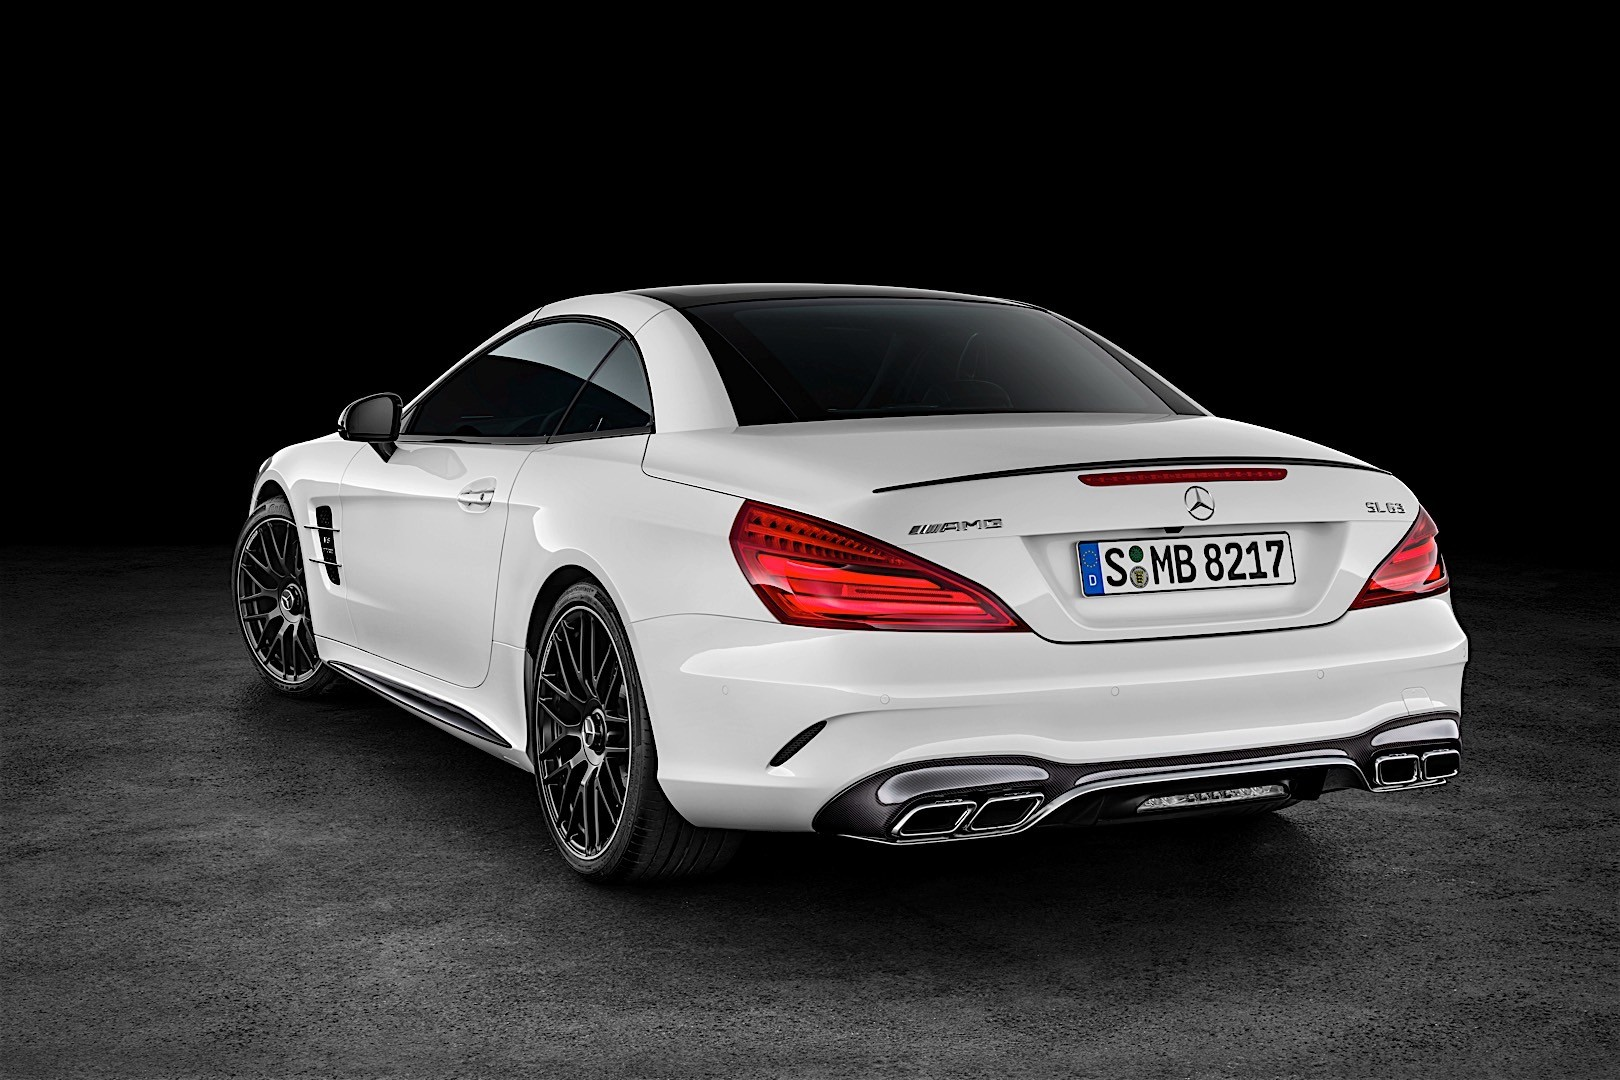 Mercedes benz sl 63 amg r231 specs 2016 2017 2018 for Mercedes benz sl500 amg